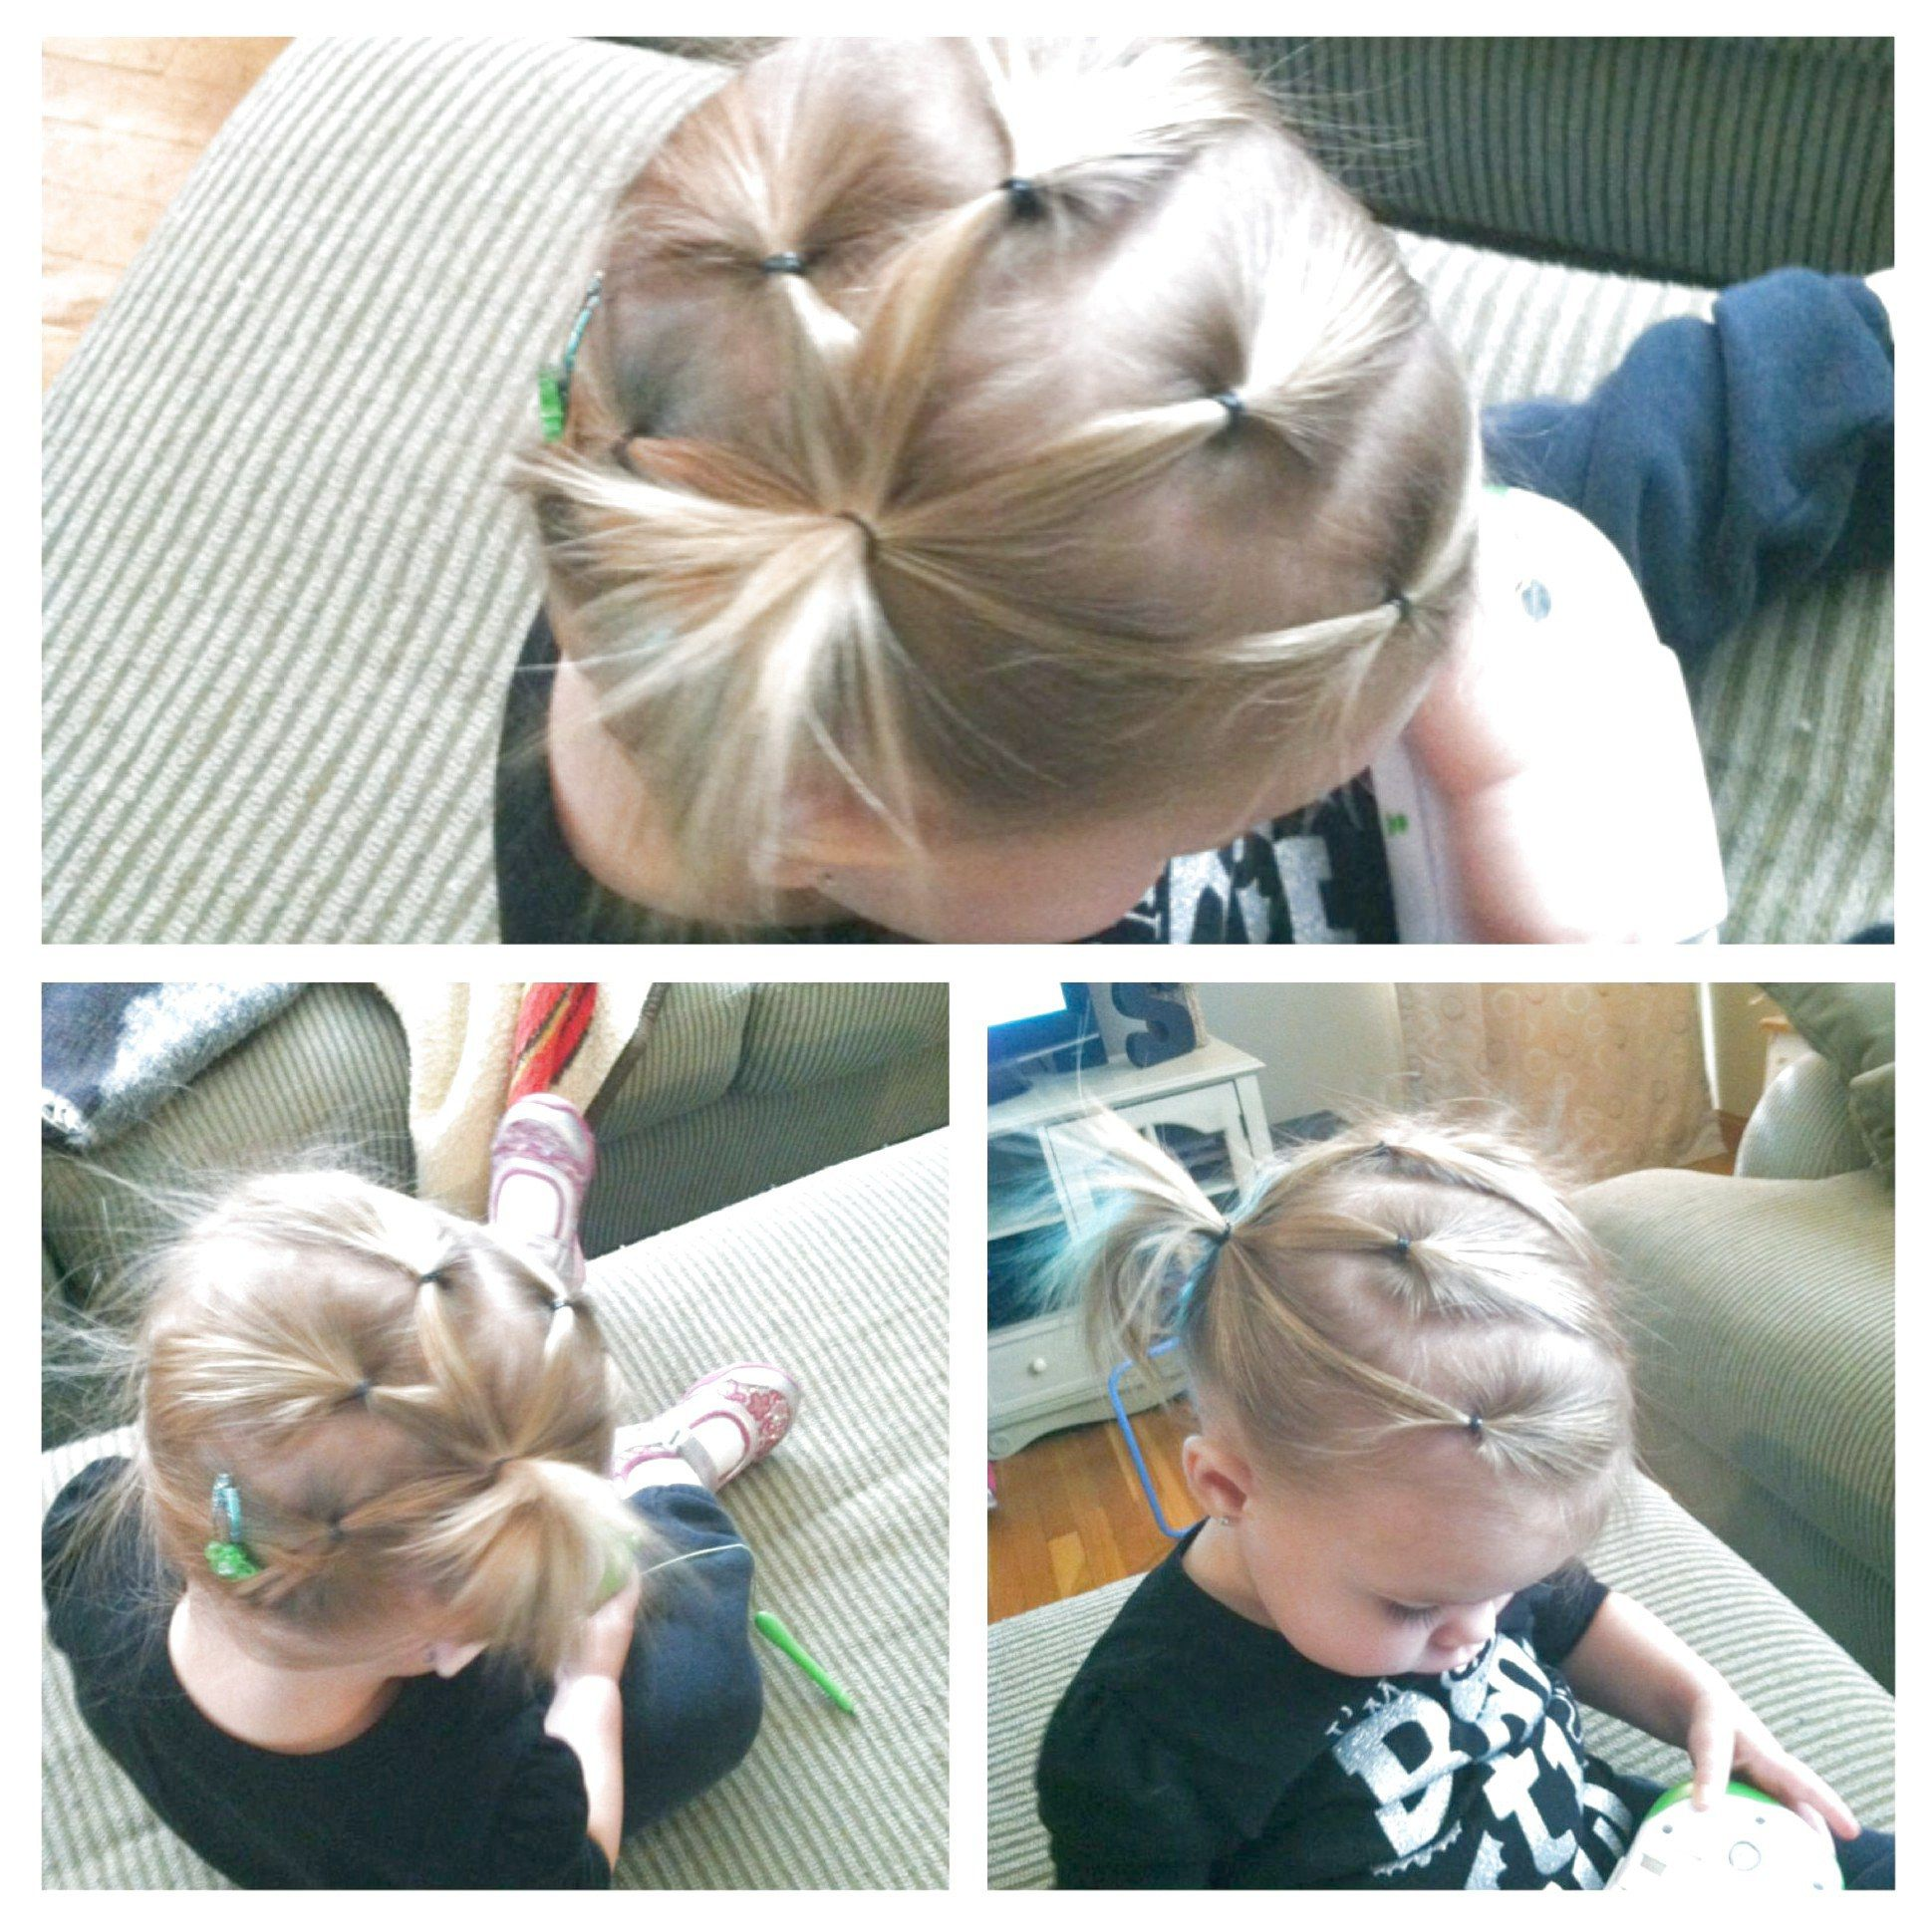 Toddlers Hair Style For Thin Hair Cutekidshairstyles If You Liked This Pin Click Now For More Details Baby Hairstyles Toddler Hair Kids Hairstyles